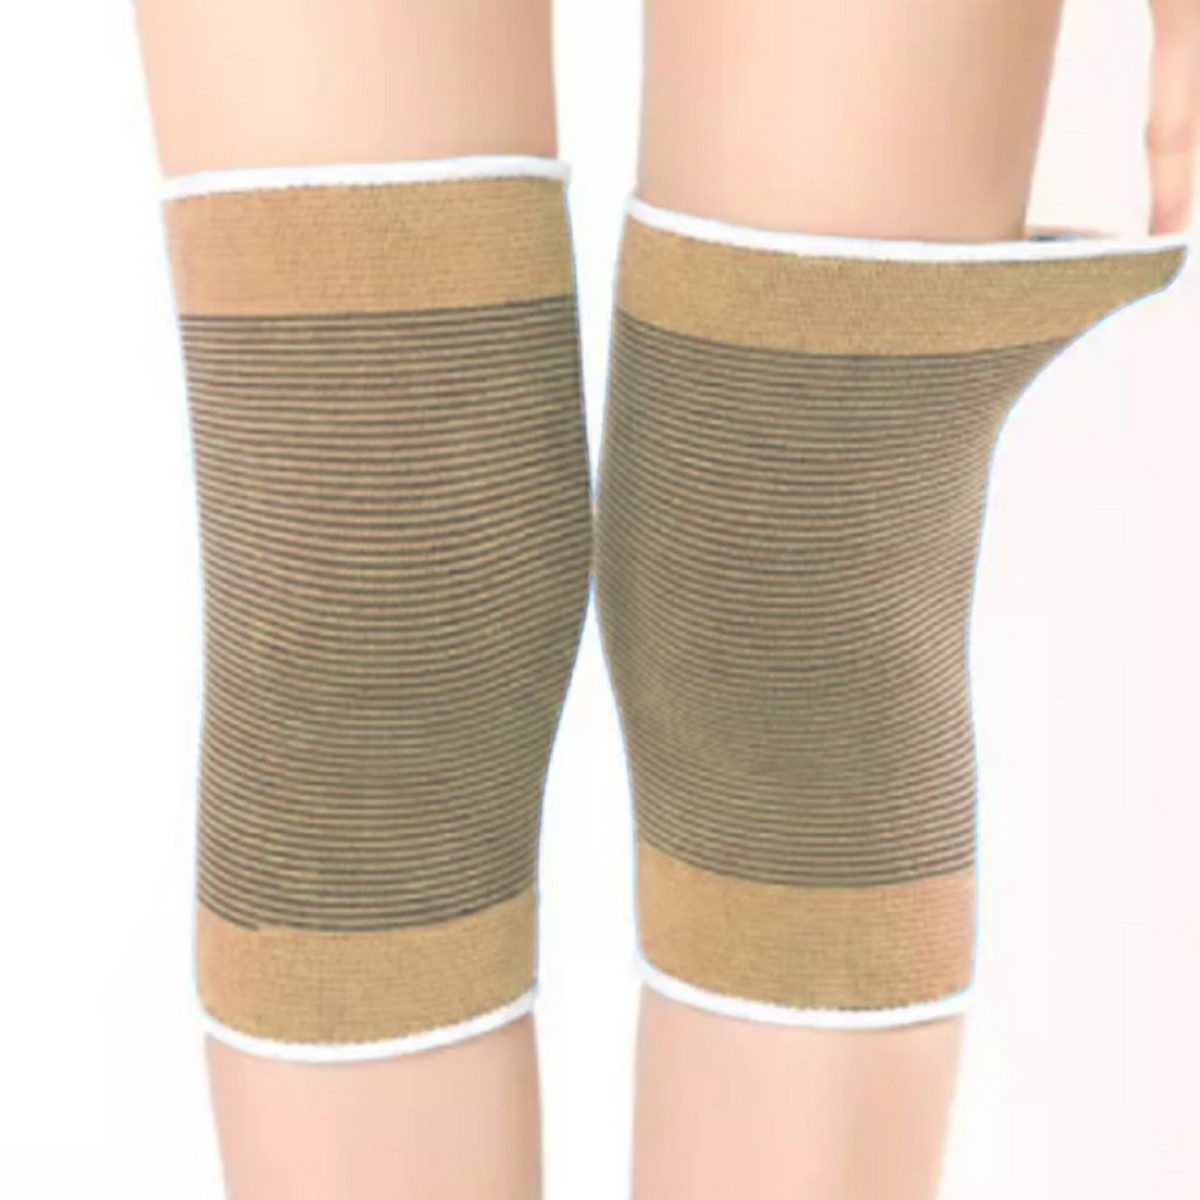 Knee Cap Brace Pair Support Sleeve for Running, Tennis Football Pain Relief Knee Support